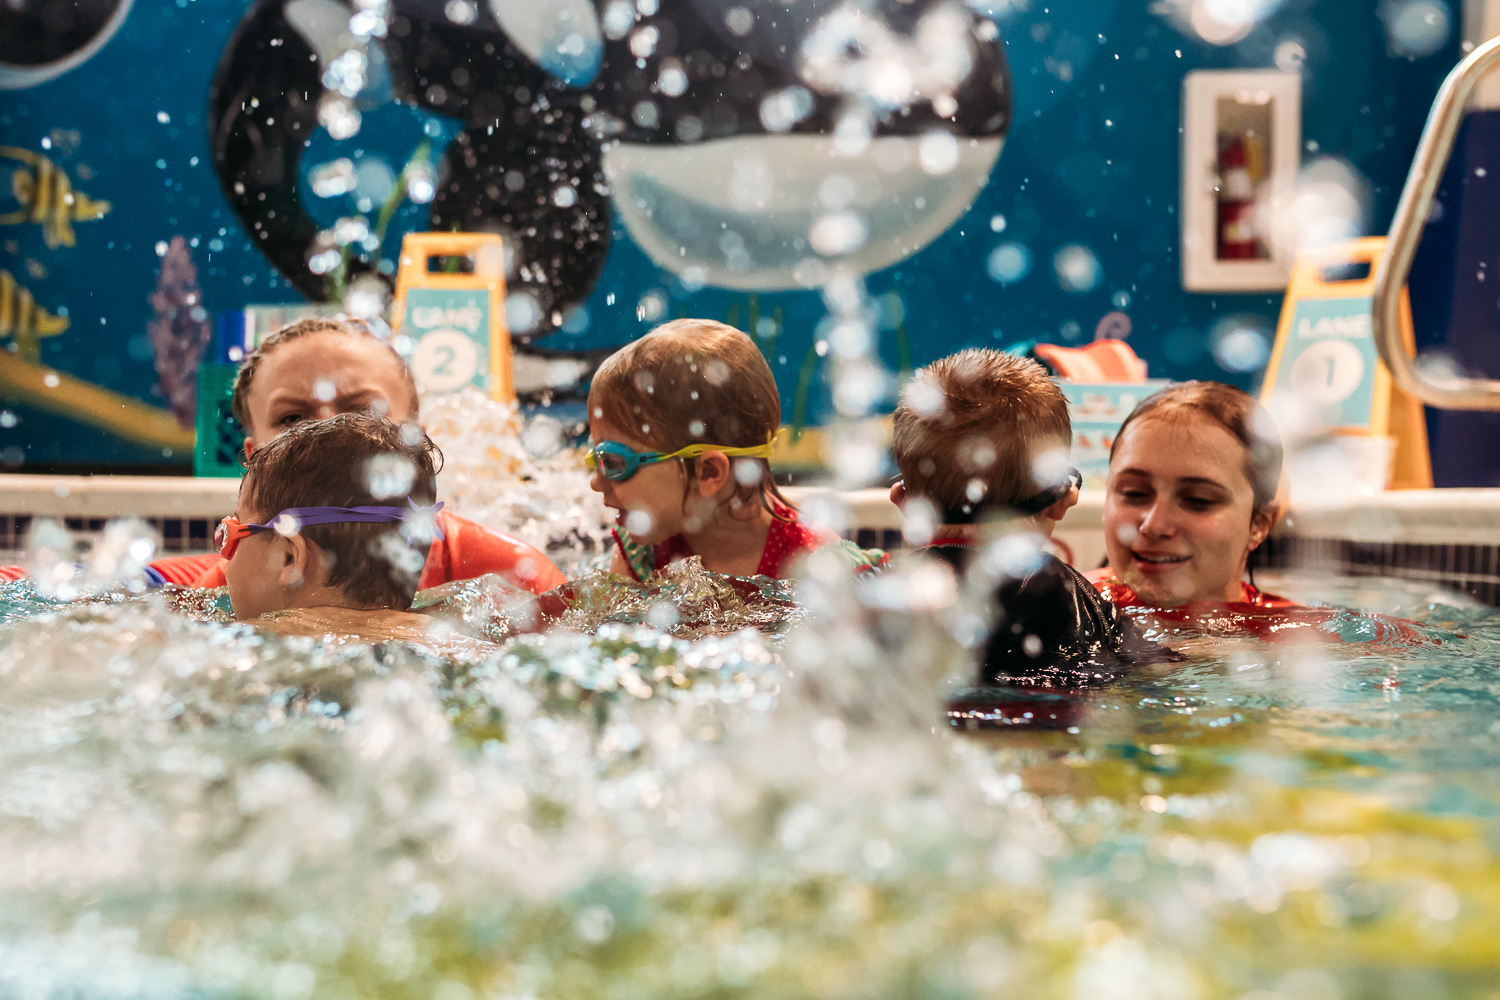 Childrens splashing in the water during swimming lessons at Goldfish Swim School in Brookfield, Wisconsin